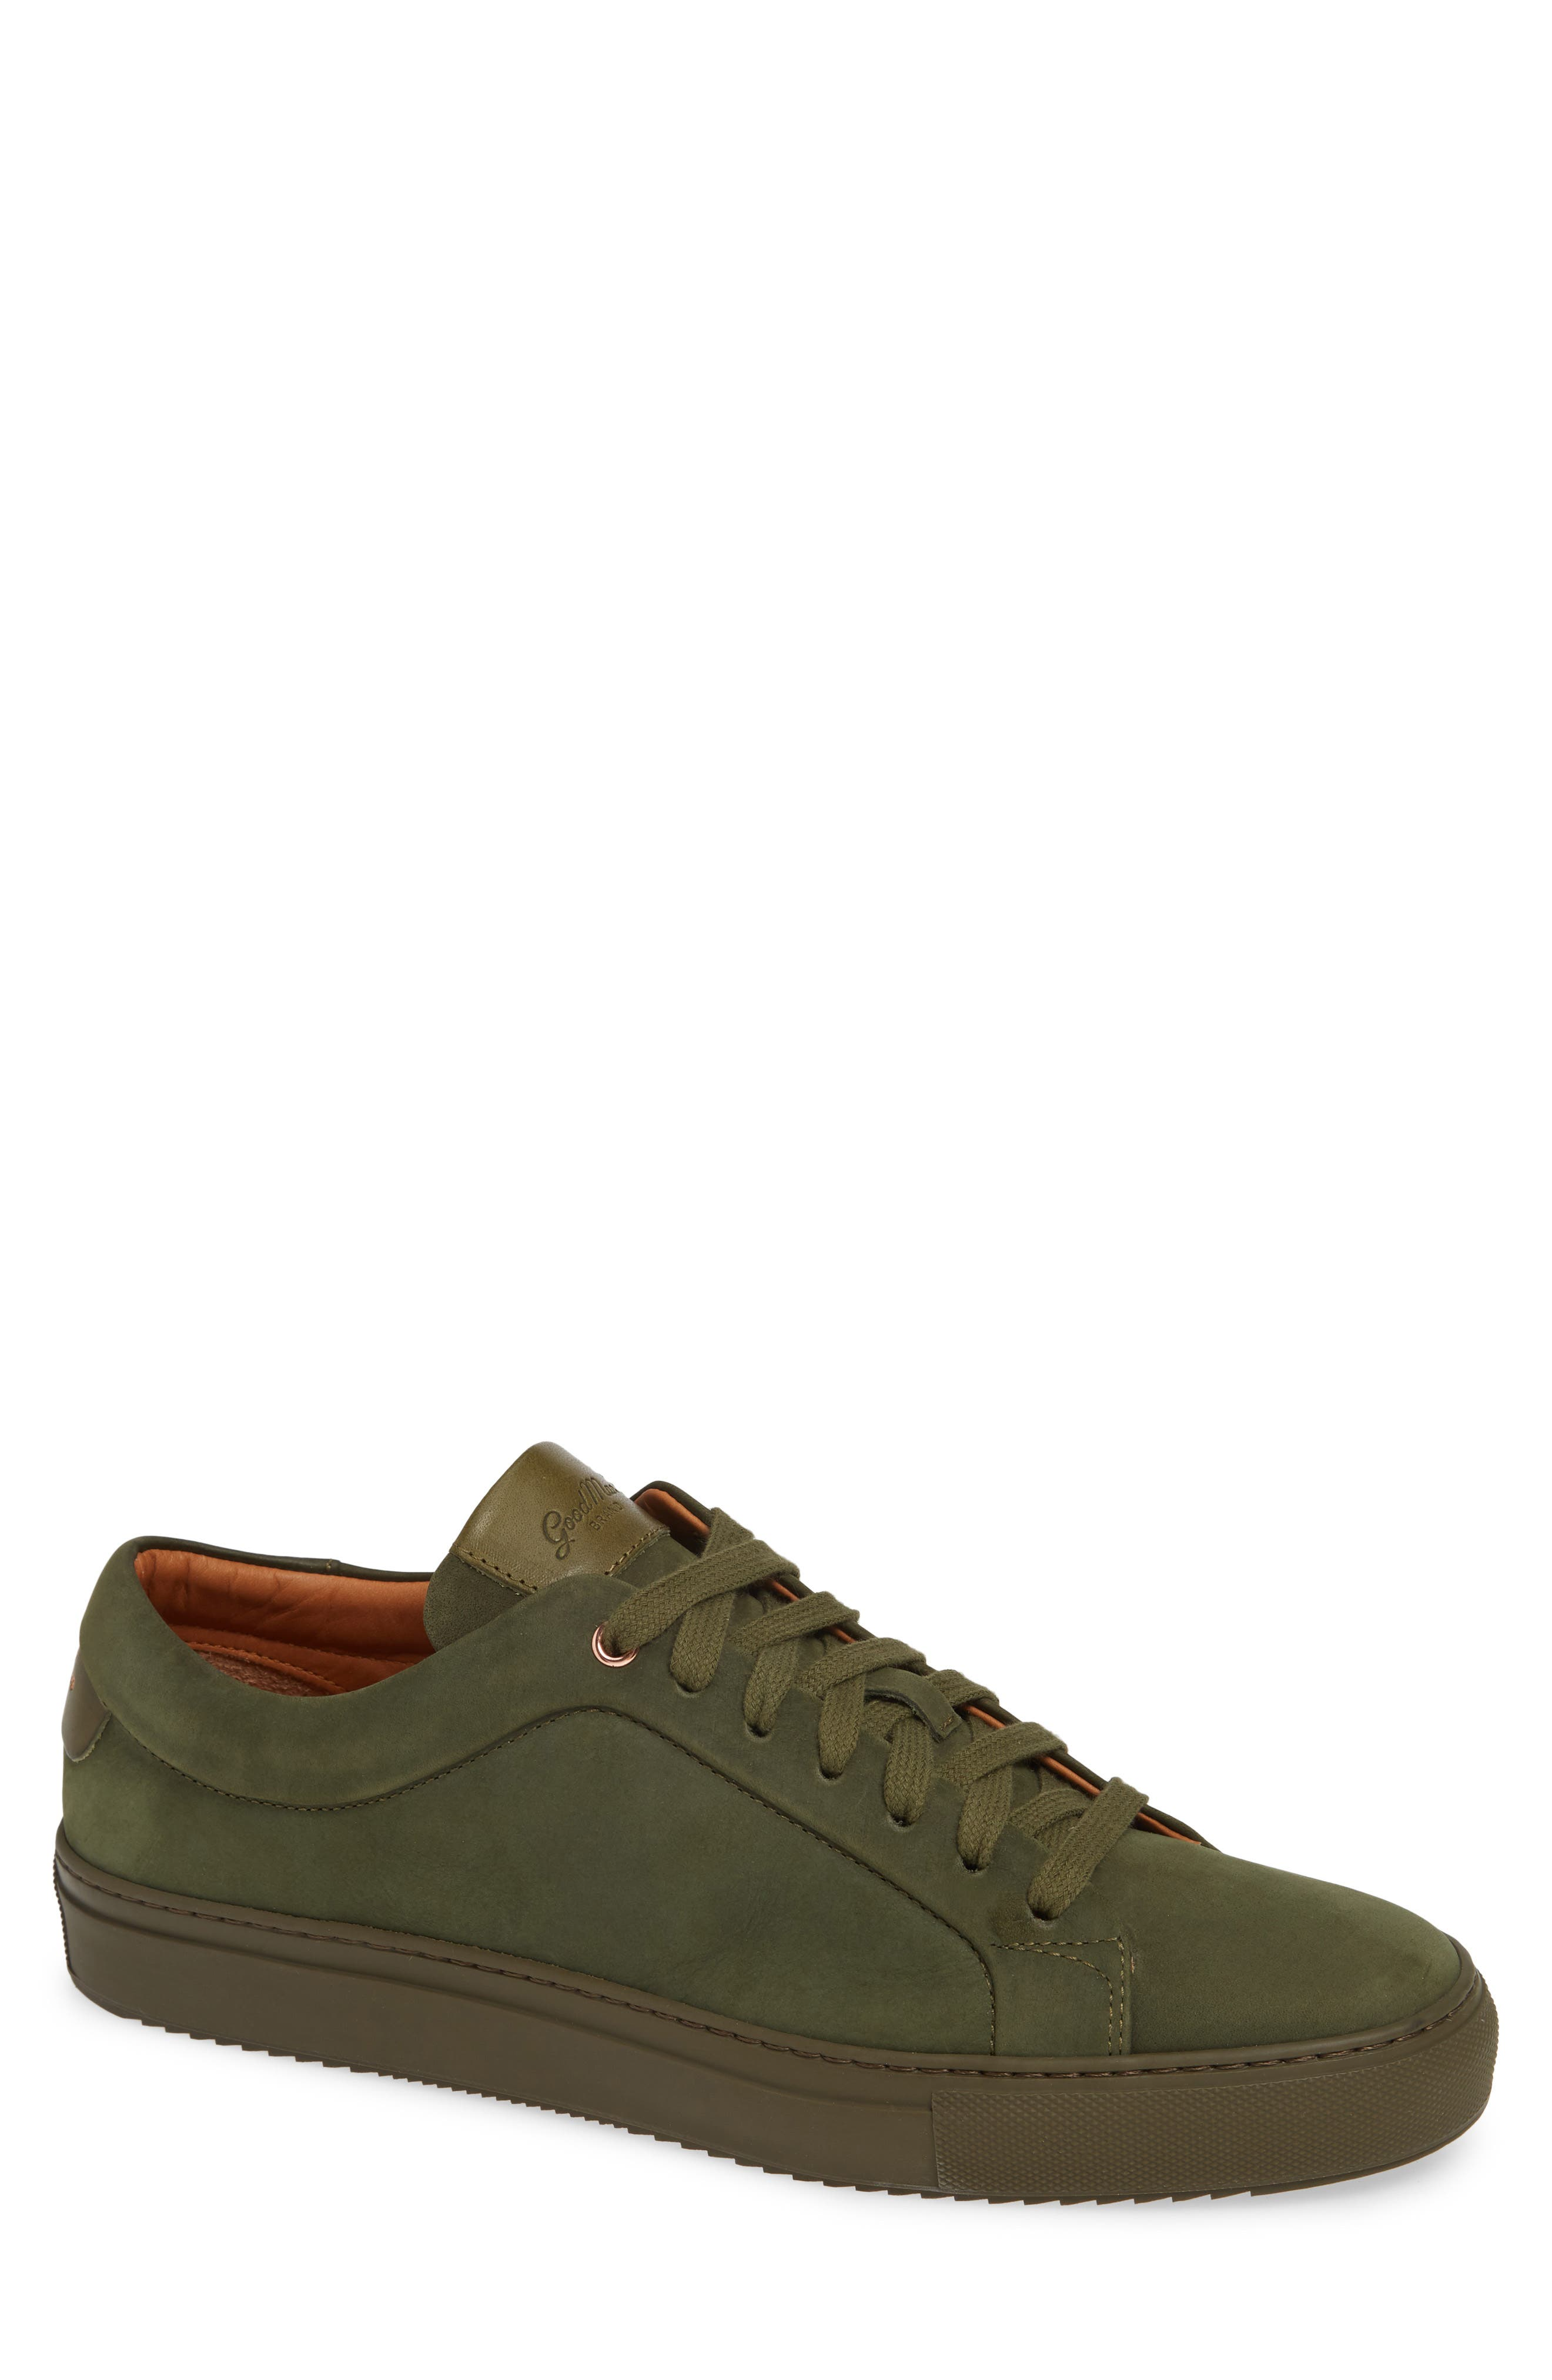 Sure Shot Lo Sneaker,                         Main,                         color, MILITARY GREEN LEATHER